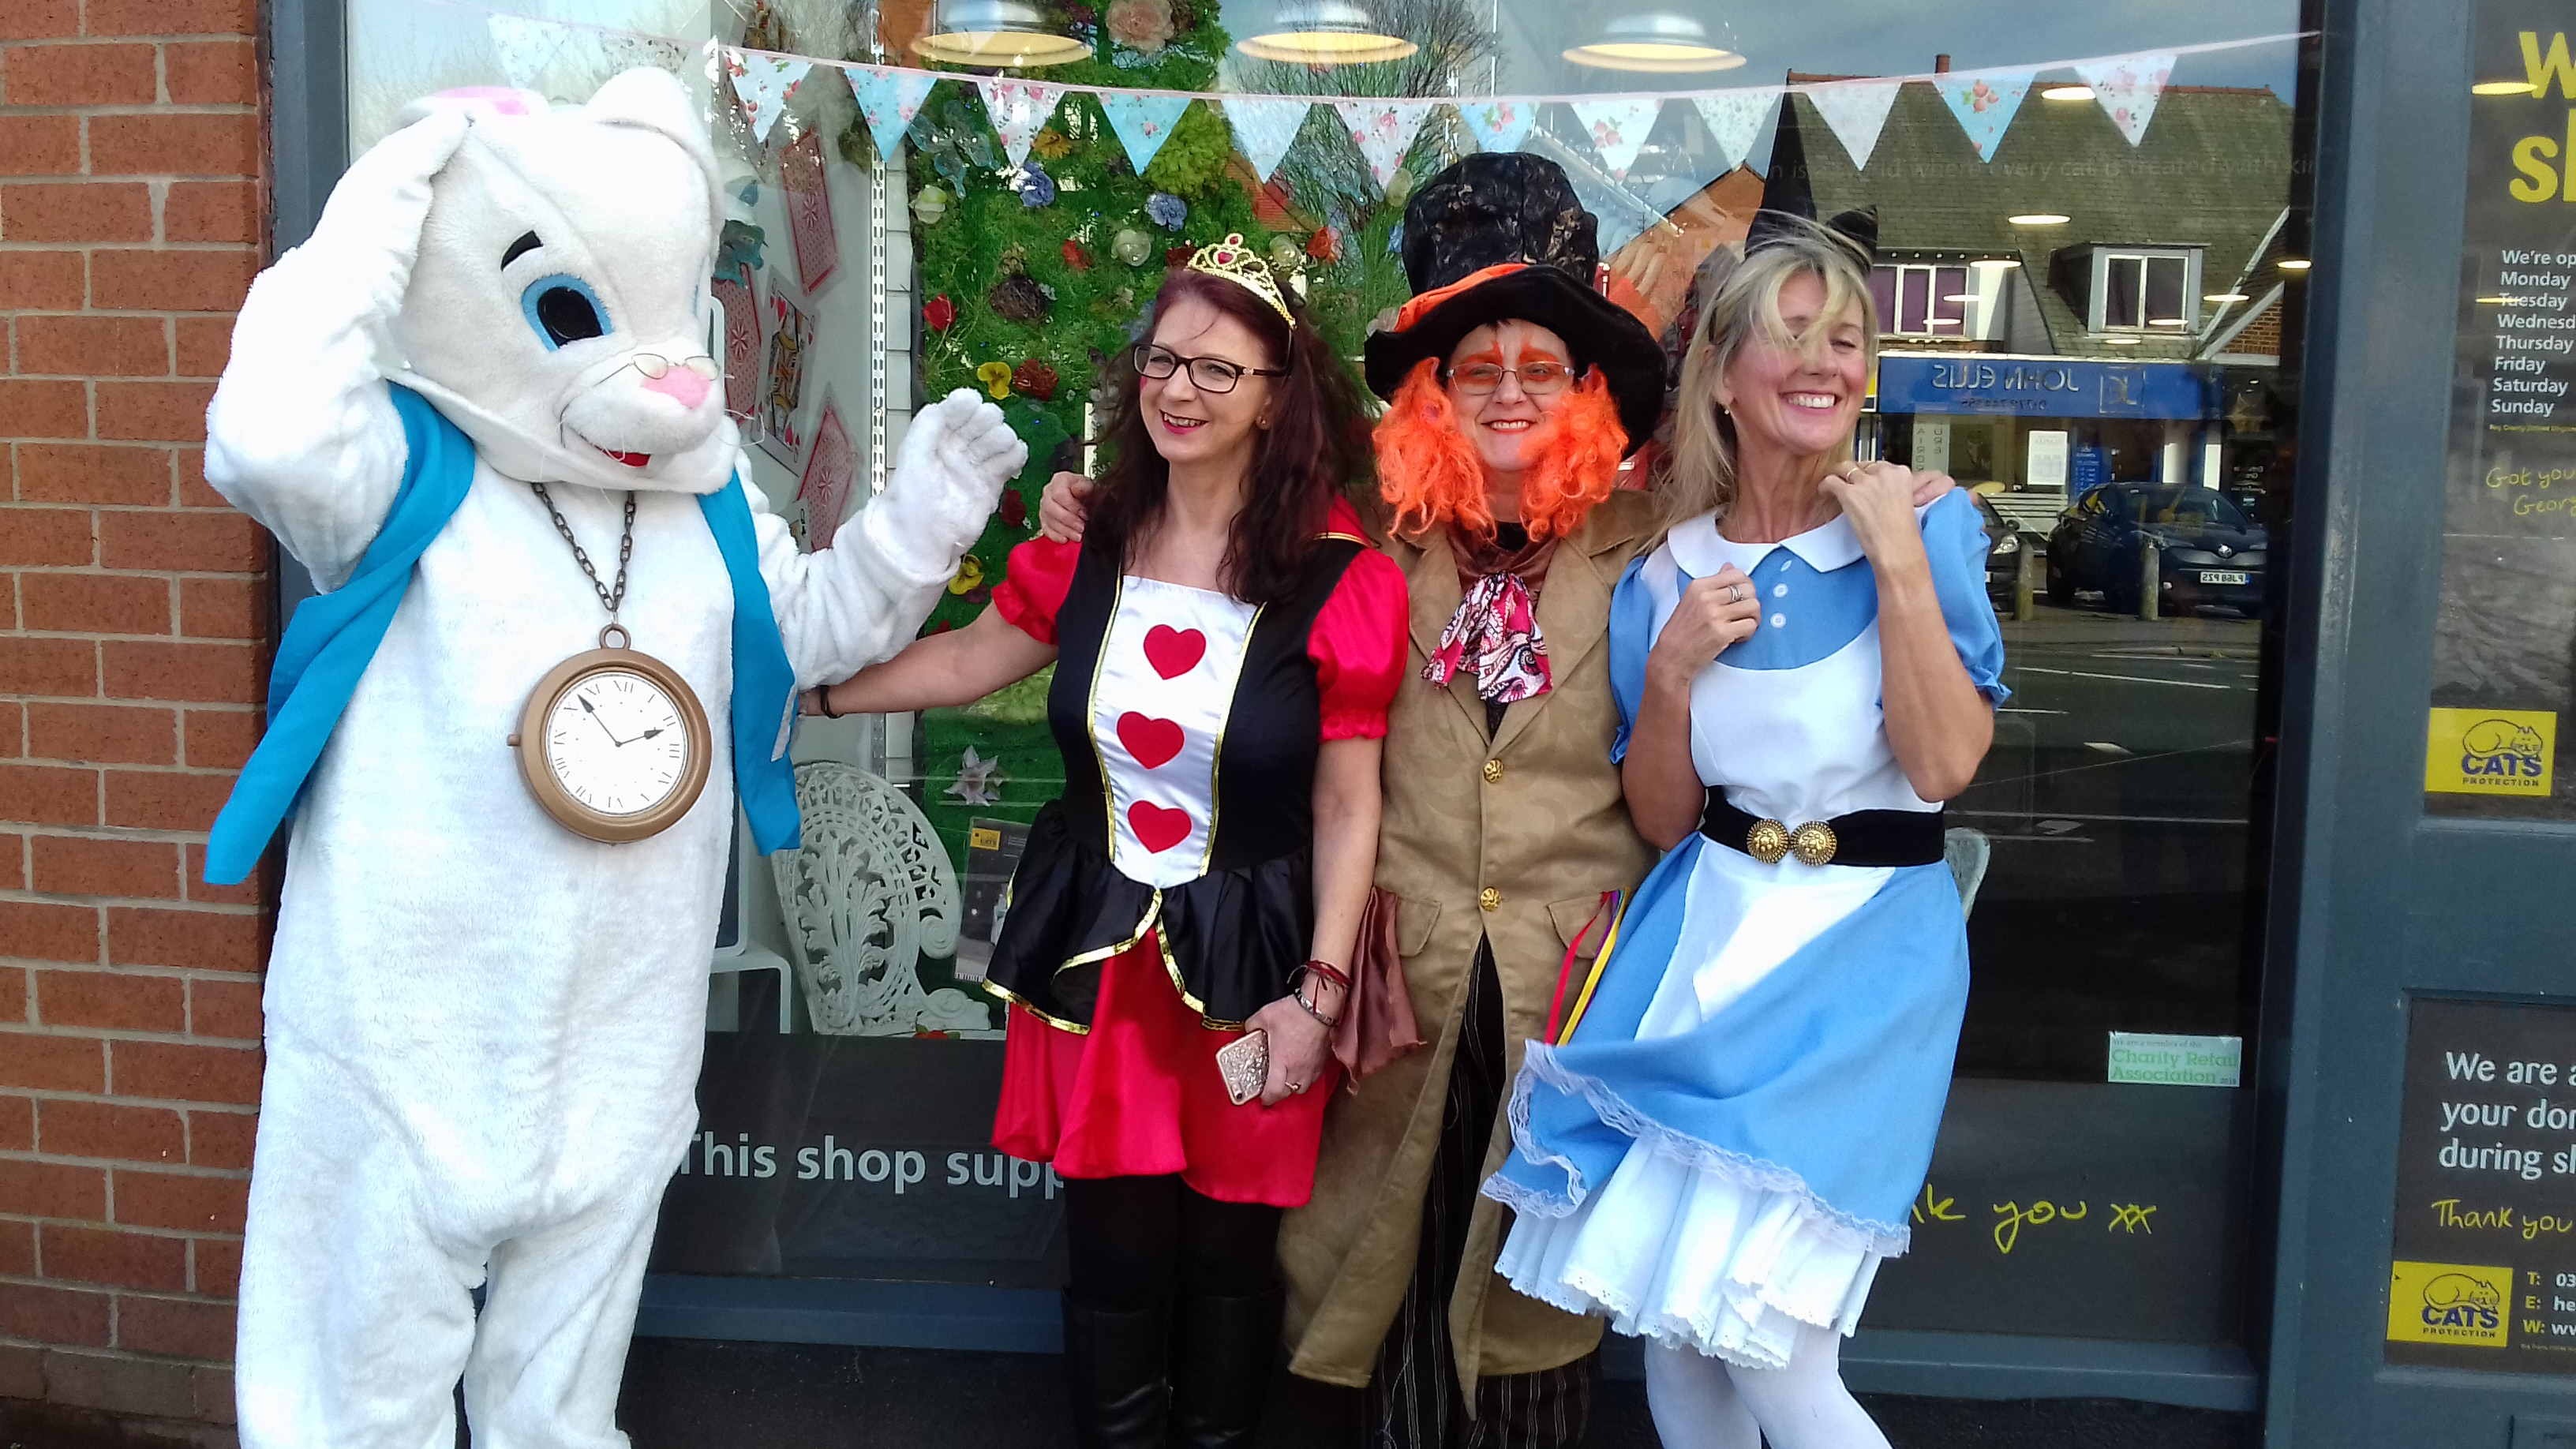 Shop staff and volunteers in fancy dress outside shop